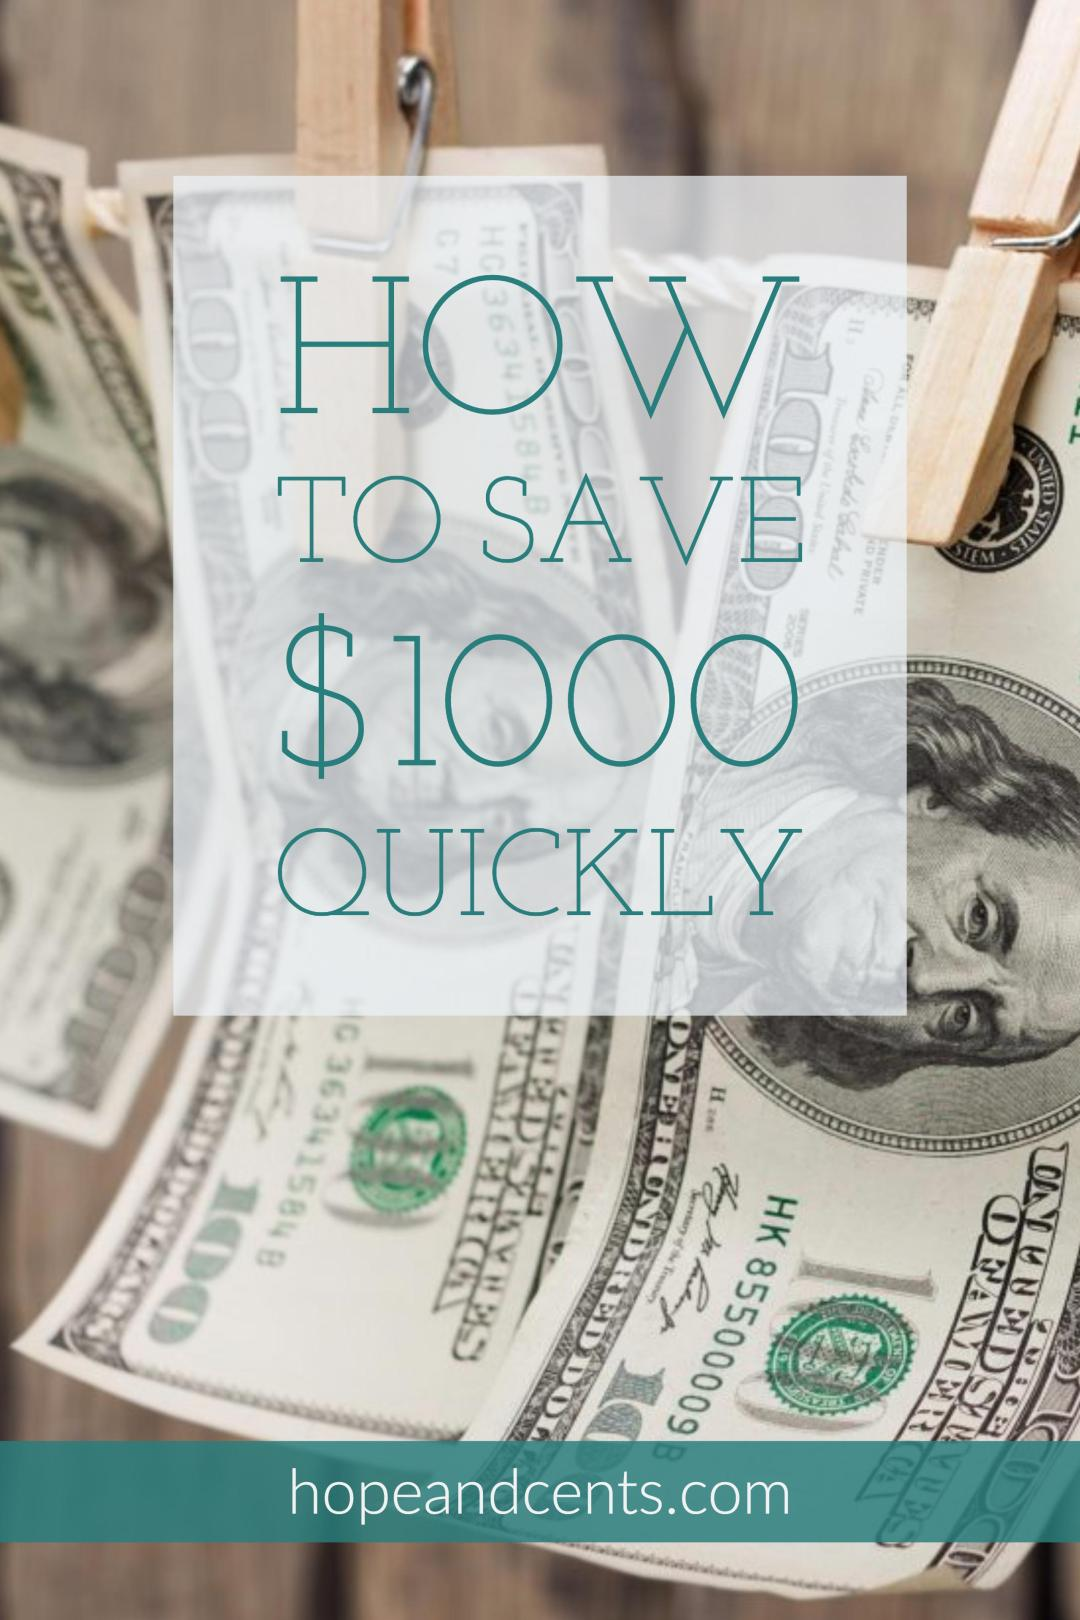 Need to save $1000? Need to save it quickly? Perhaps you need to start an emergency fund, you're saving for a vacation or a big purchase, or you want to invest it.